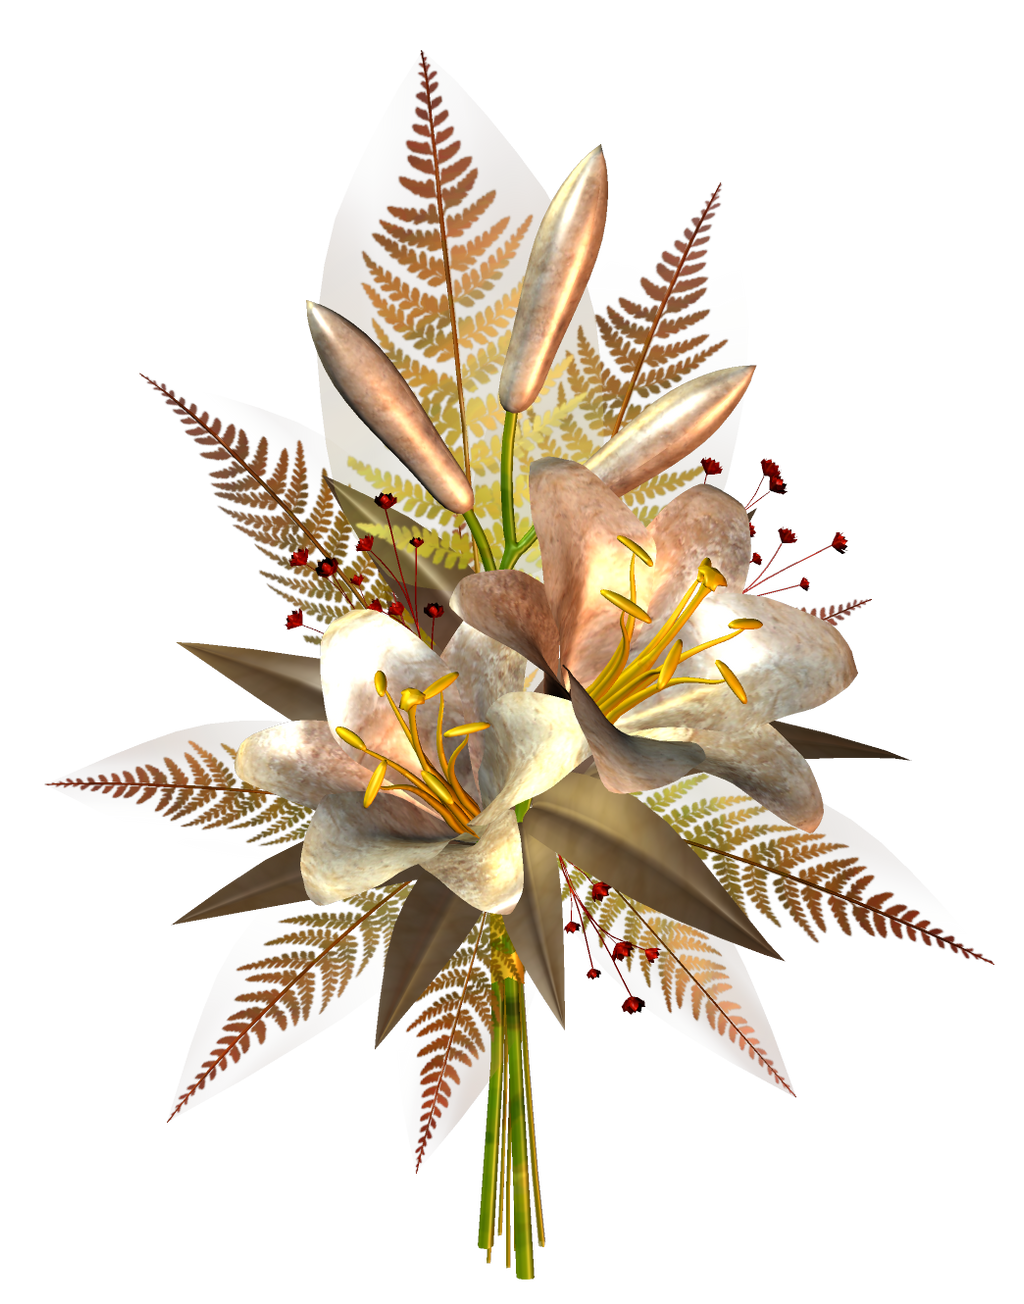 Cream Flower Decoration PNG by HanaBell1 on DeviantArt